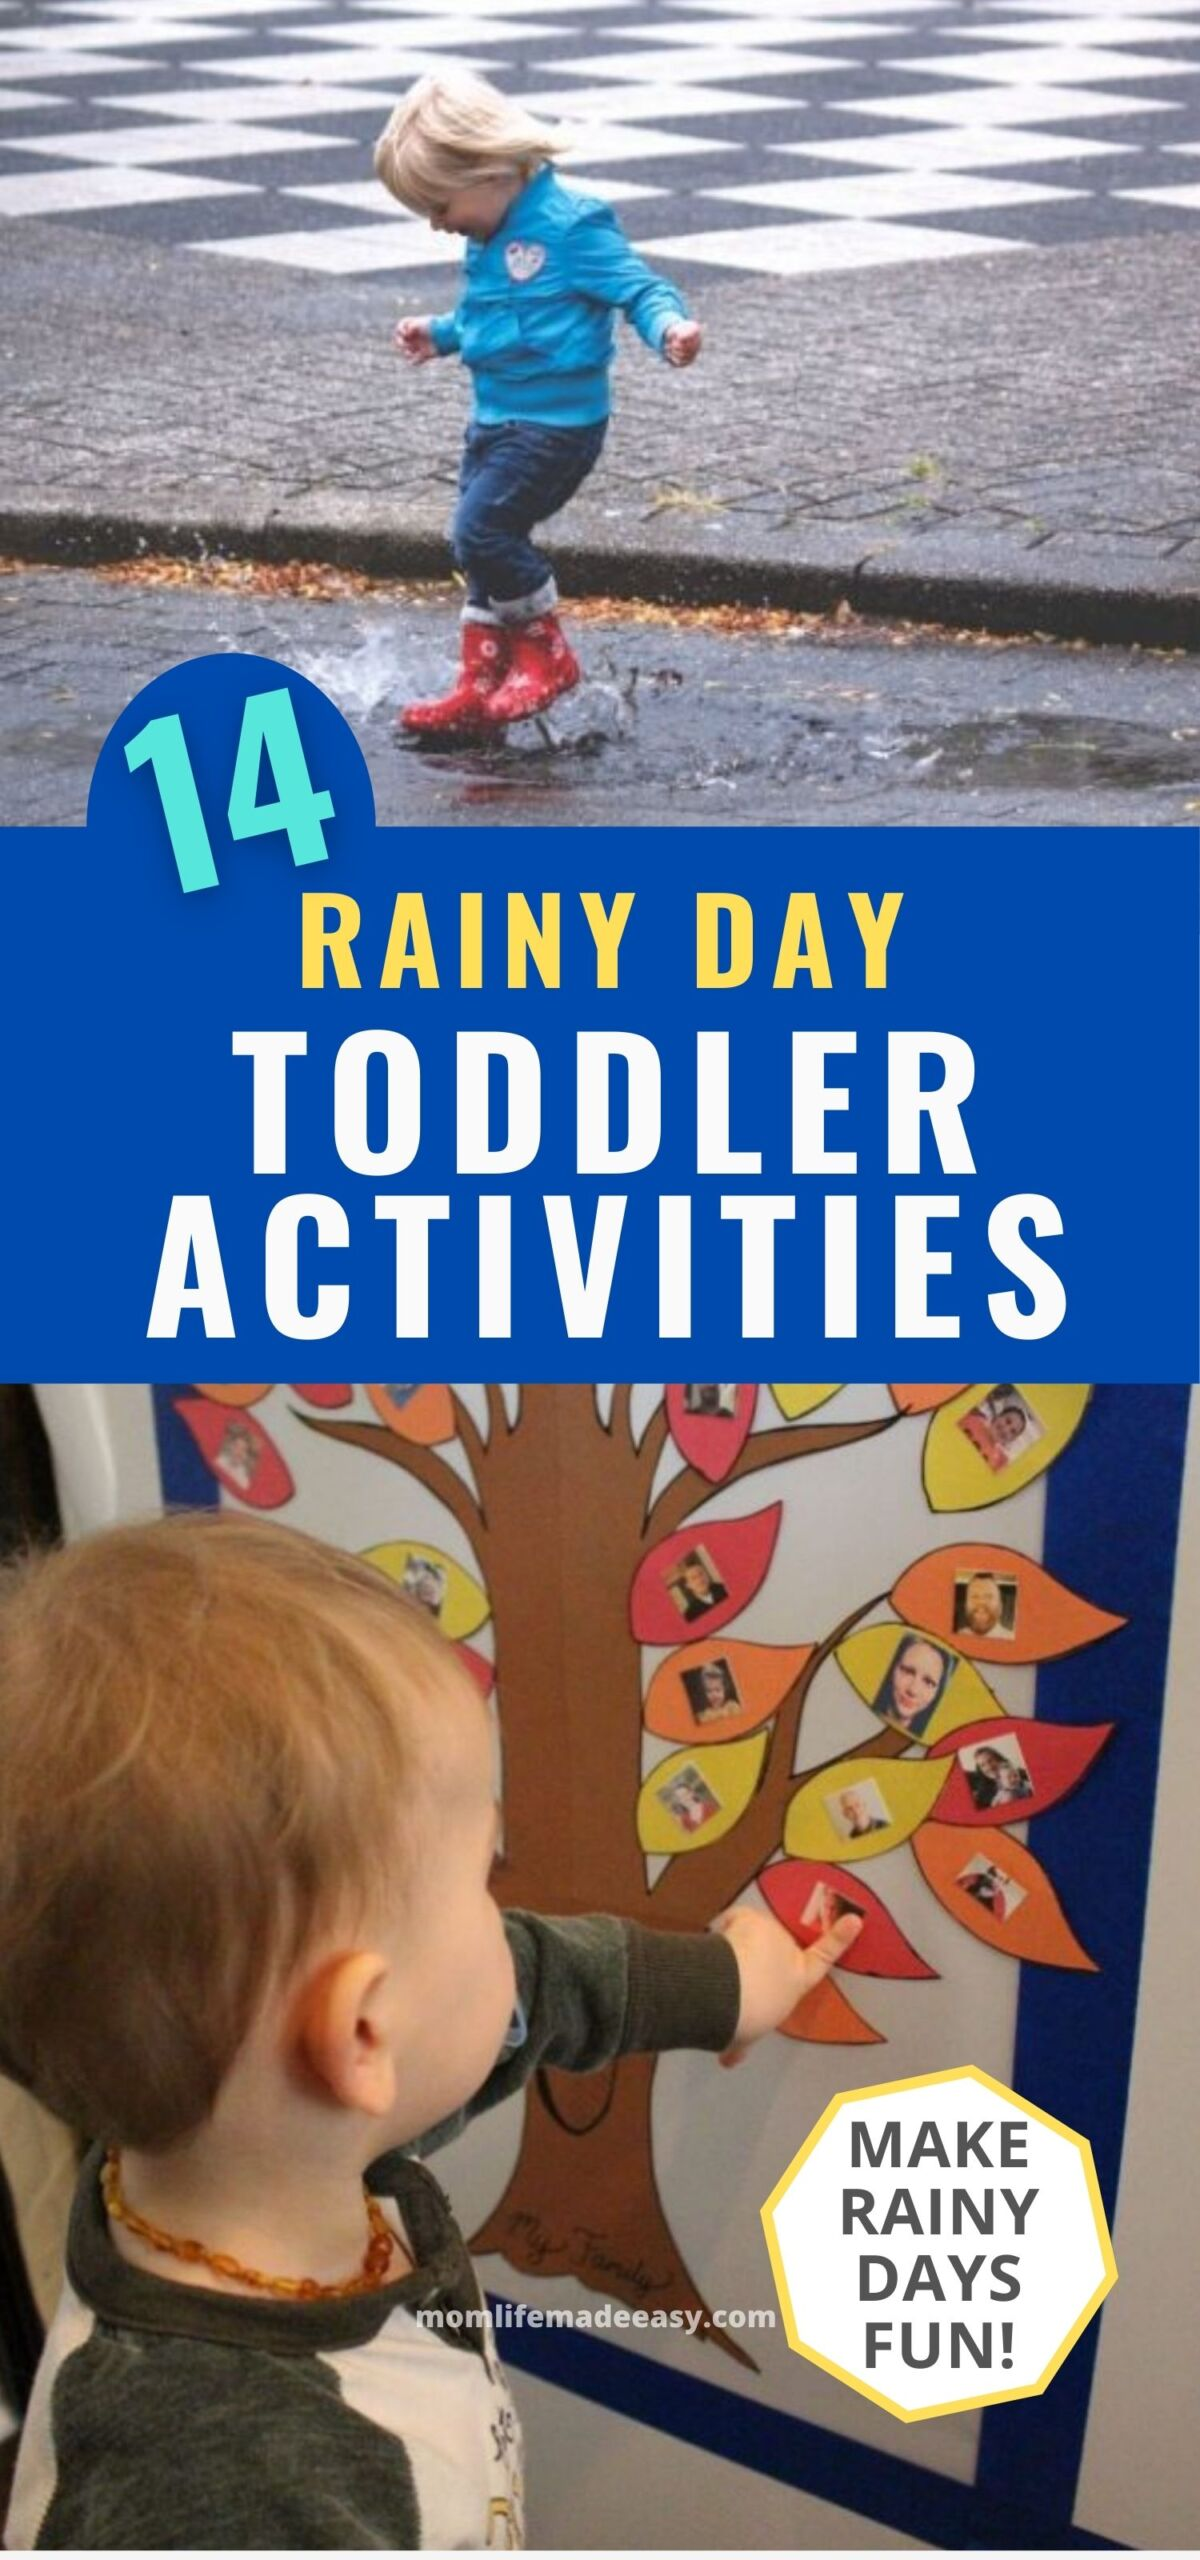 collage of rainy day toddler activities including puddle jumping and making a family tree indoors